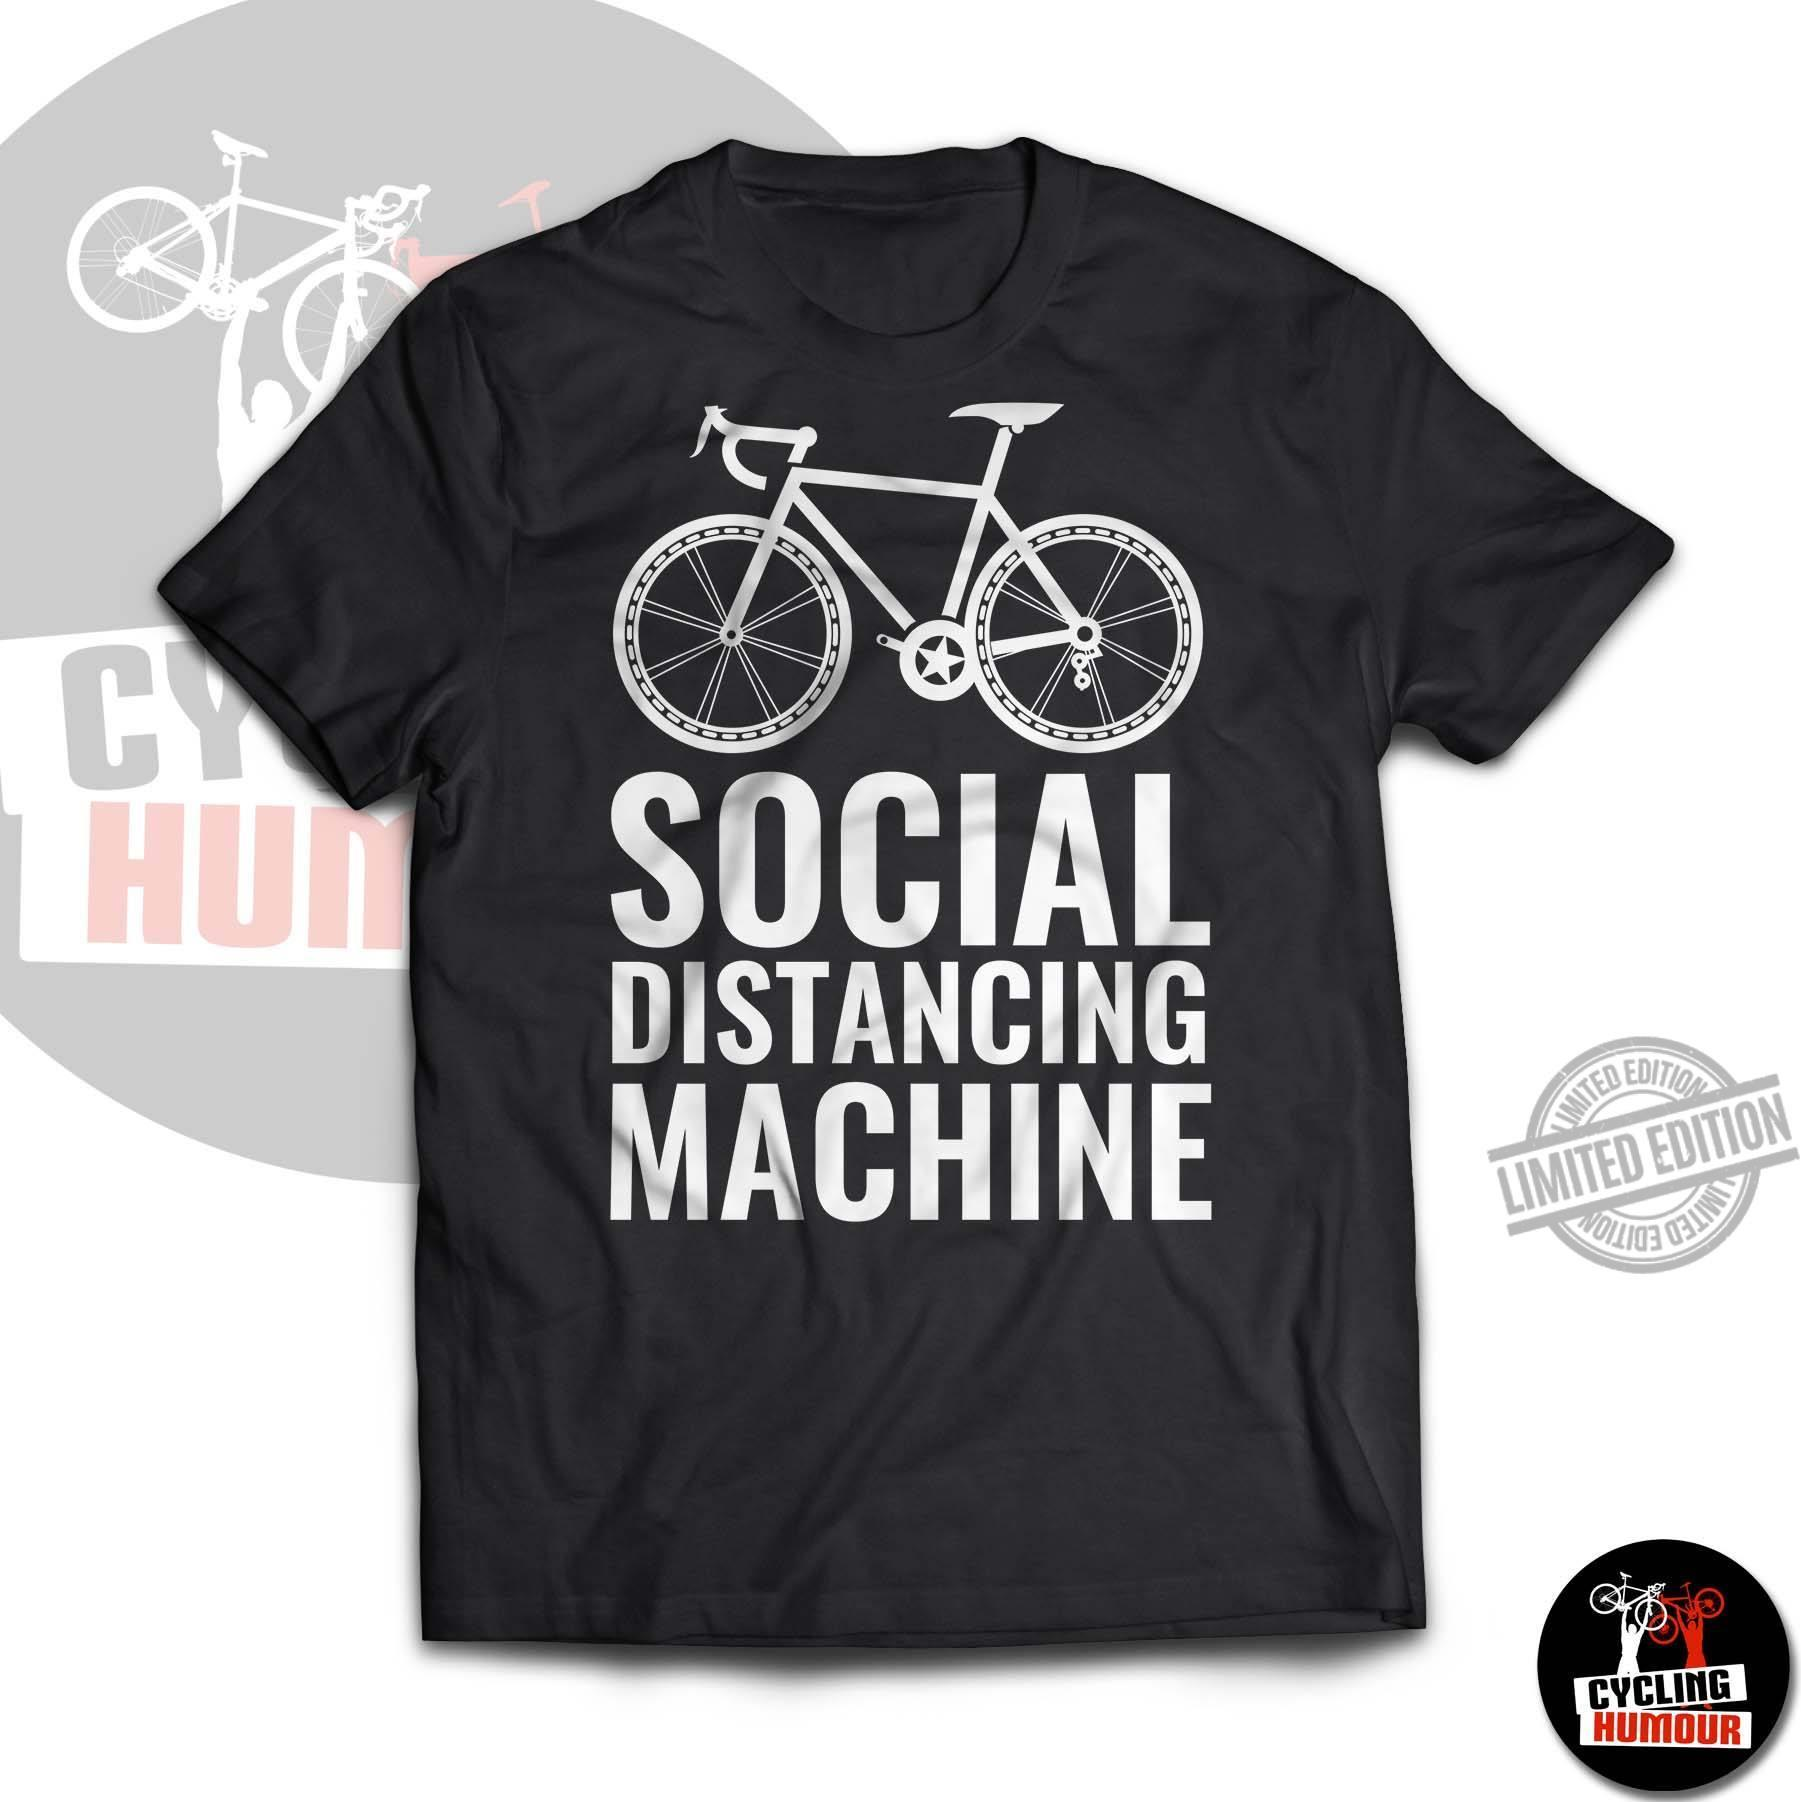 Social Distancing Machine Shirt